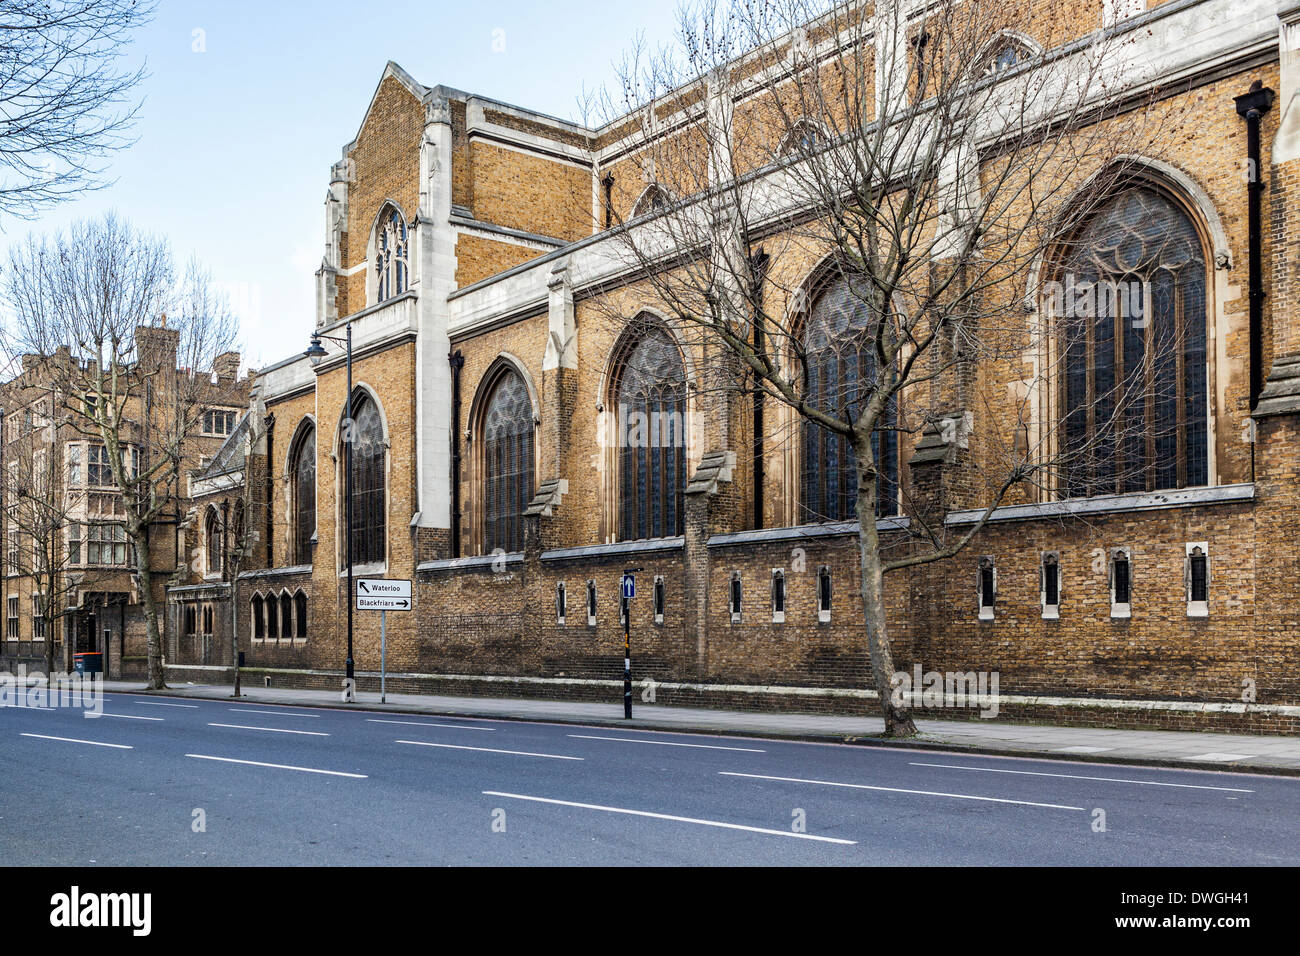 Arched windows and brick and stone exterior of St George's Cathedral - Roman Catholic church designed by Augustus Pugin, London - Stock Image